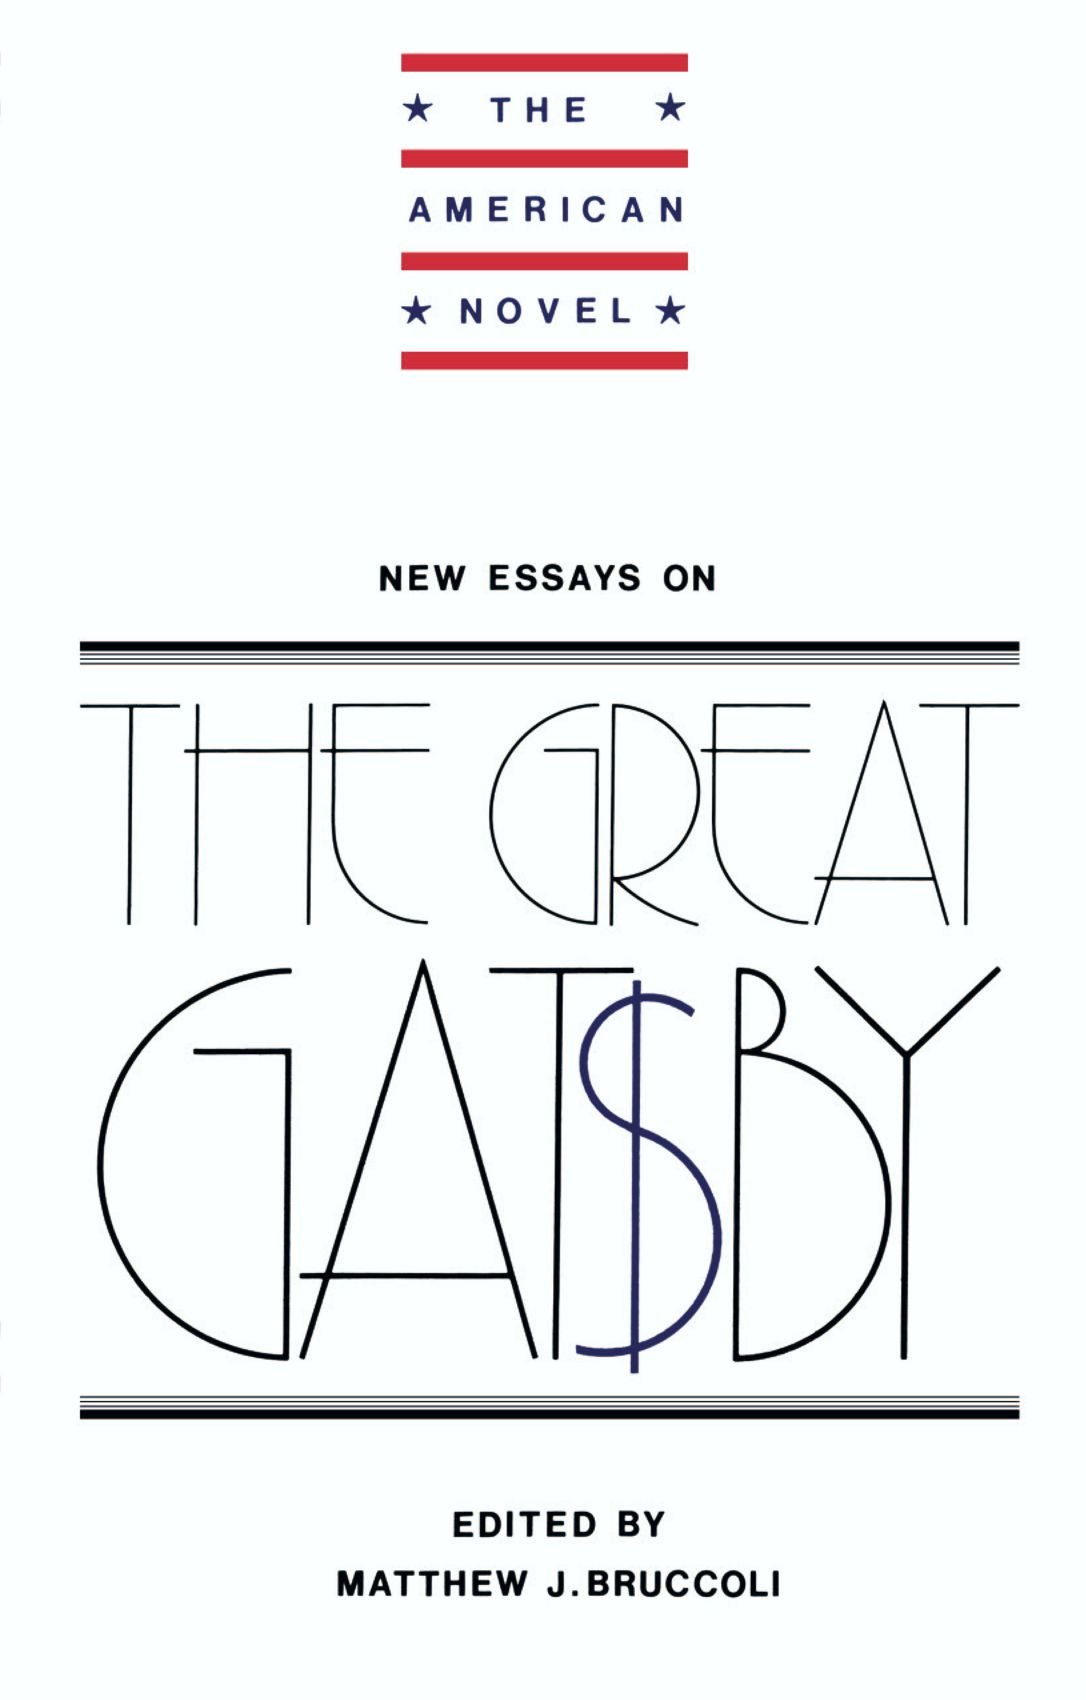 What Is The Thesis Of An Essay Amazoncom New Essays On The Great Gatsby The American Novel   Matthew J Bruccoli Books Essay On Business Management also How To Write An Essay High School Amazoncom New Essays On The Great Gatsby The American Novel  Computer Science Essays